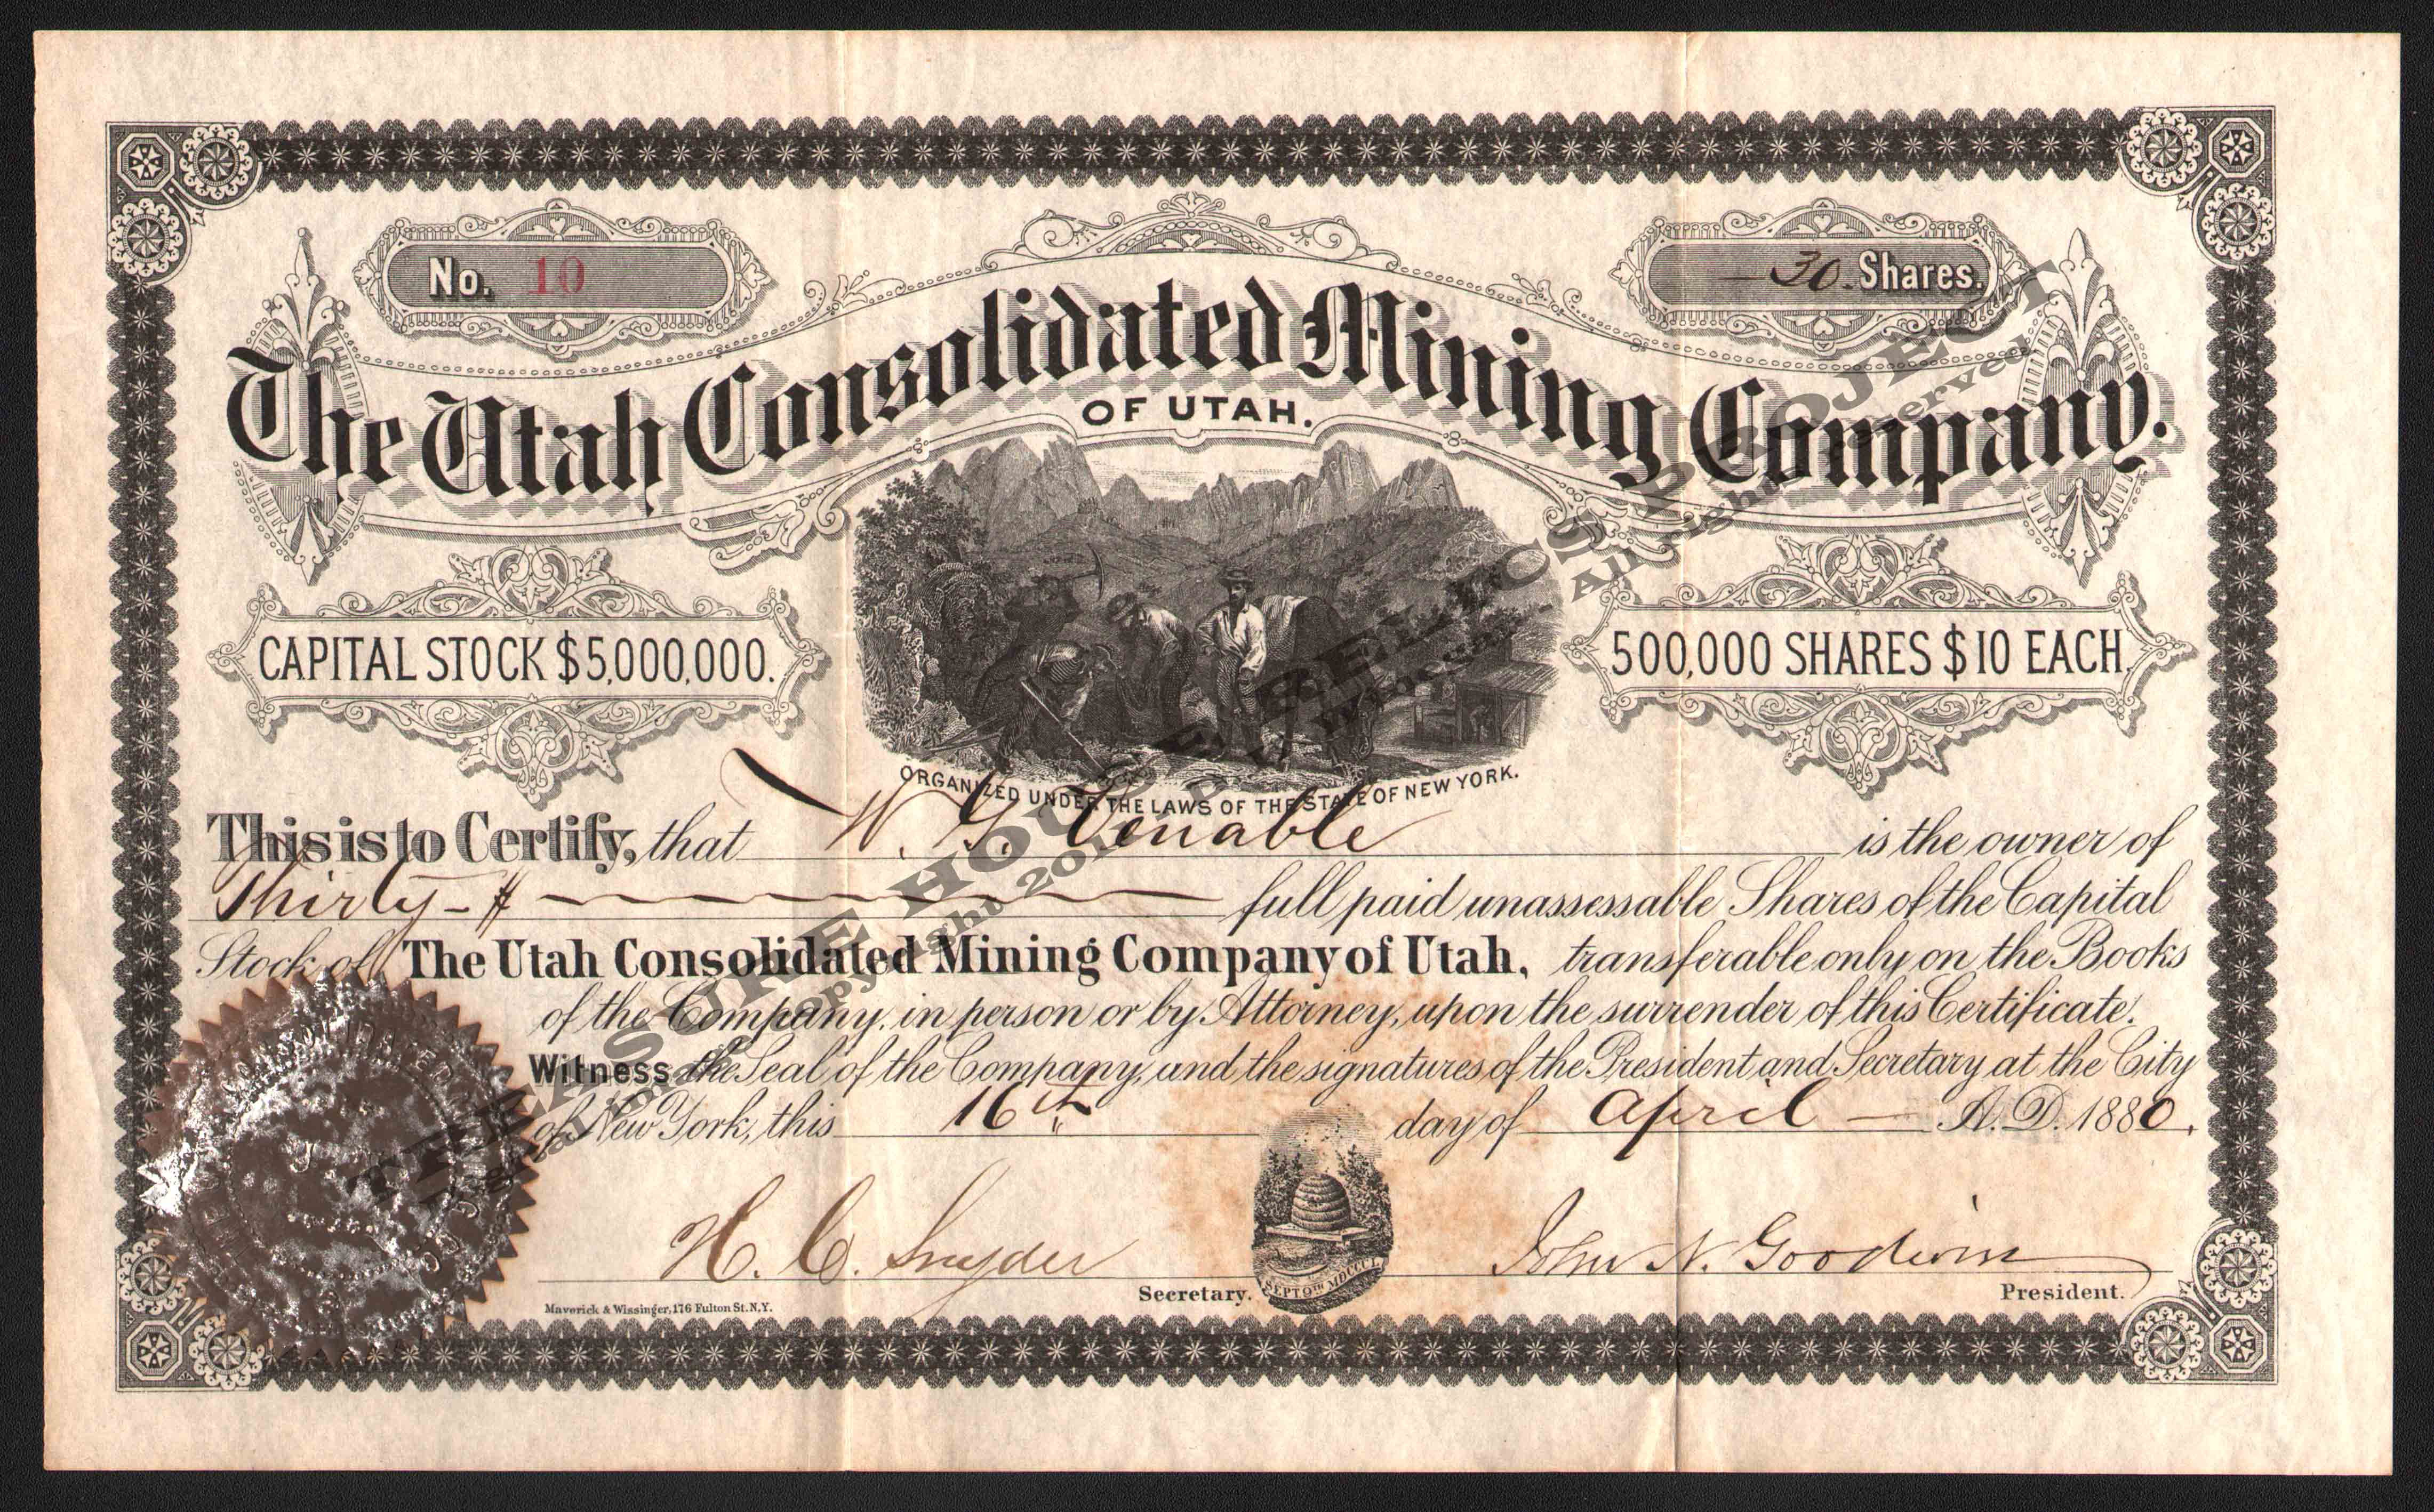 UTAH_CONSOLIDATED_MINING_CO_OF_UTAH_10_1880_400_emboss.jpg